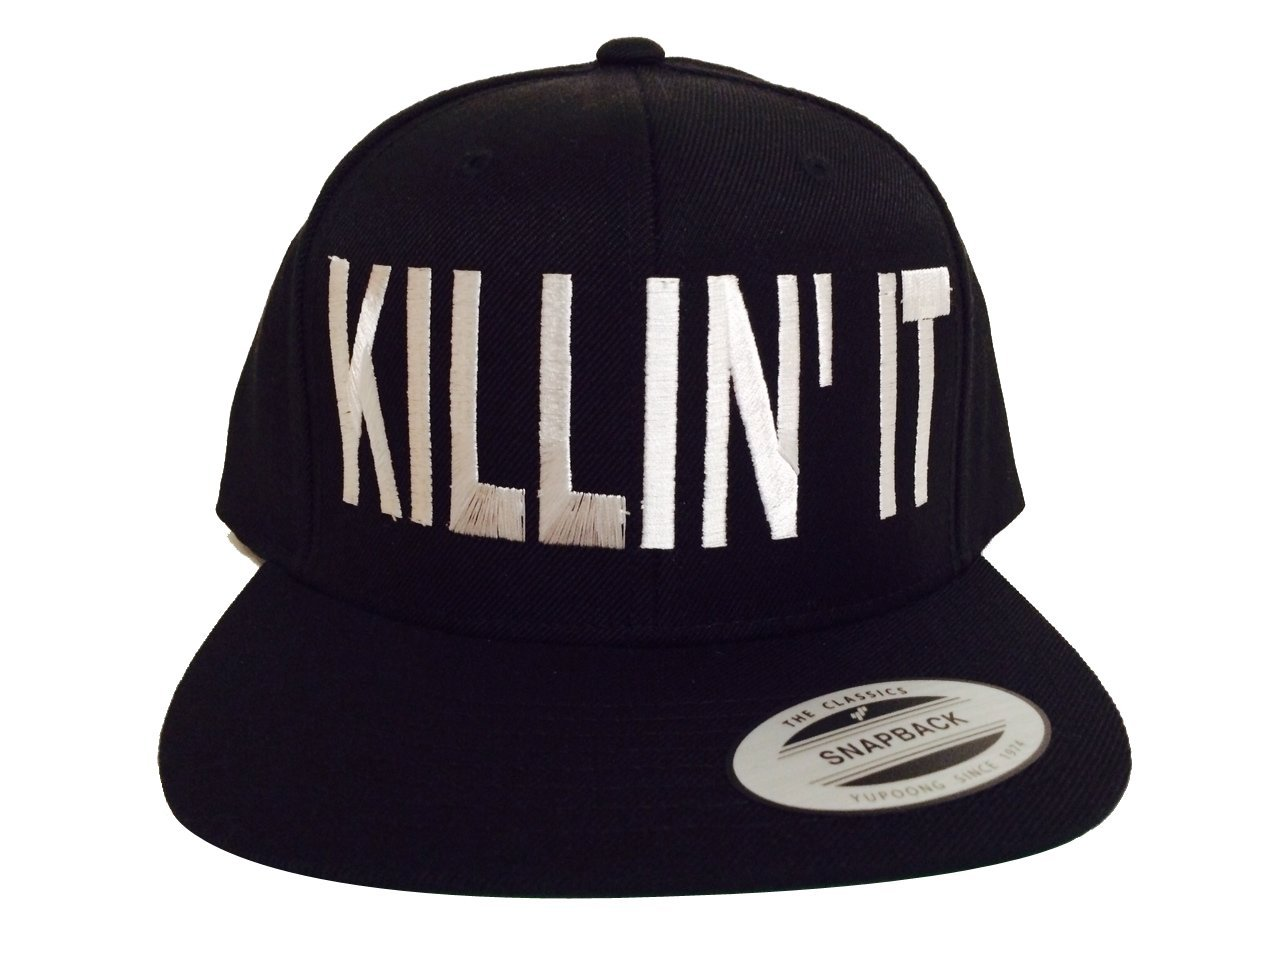 Amazon.com: KILLIN' IT Snapback Hat: Everything Else